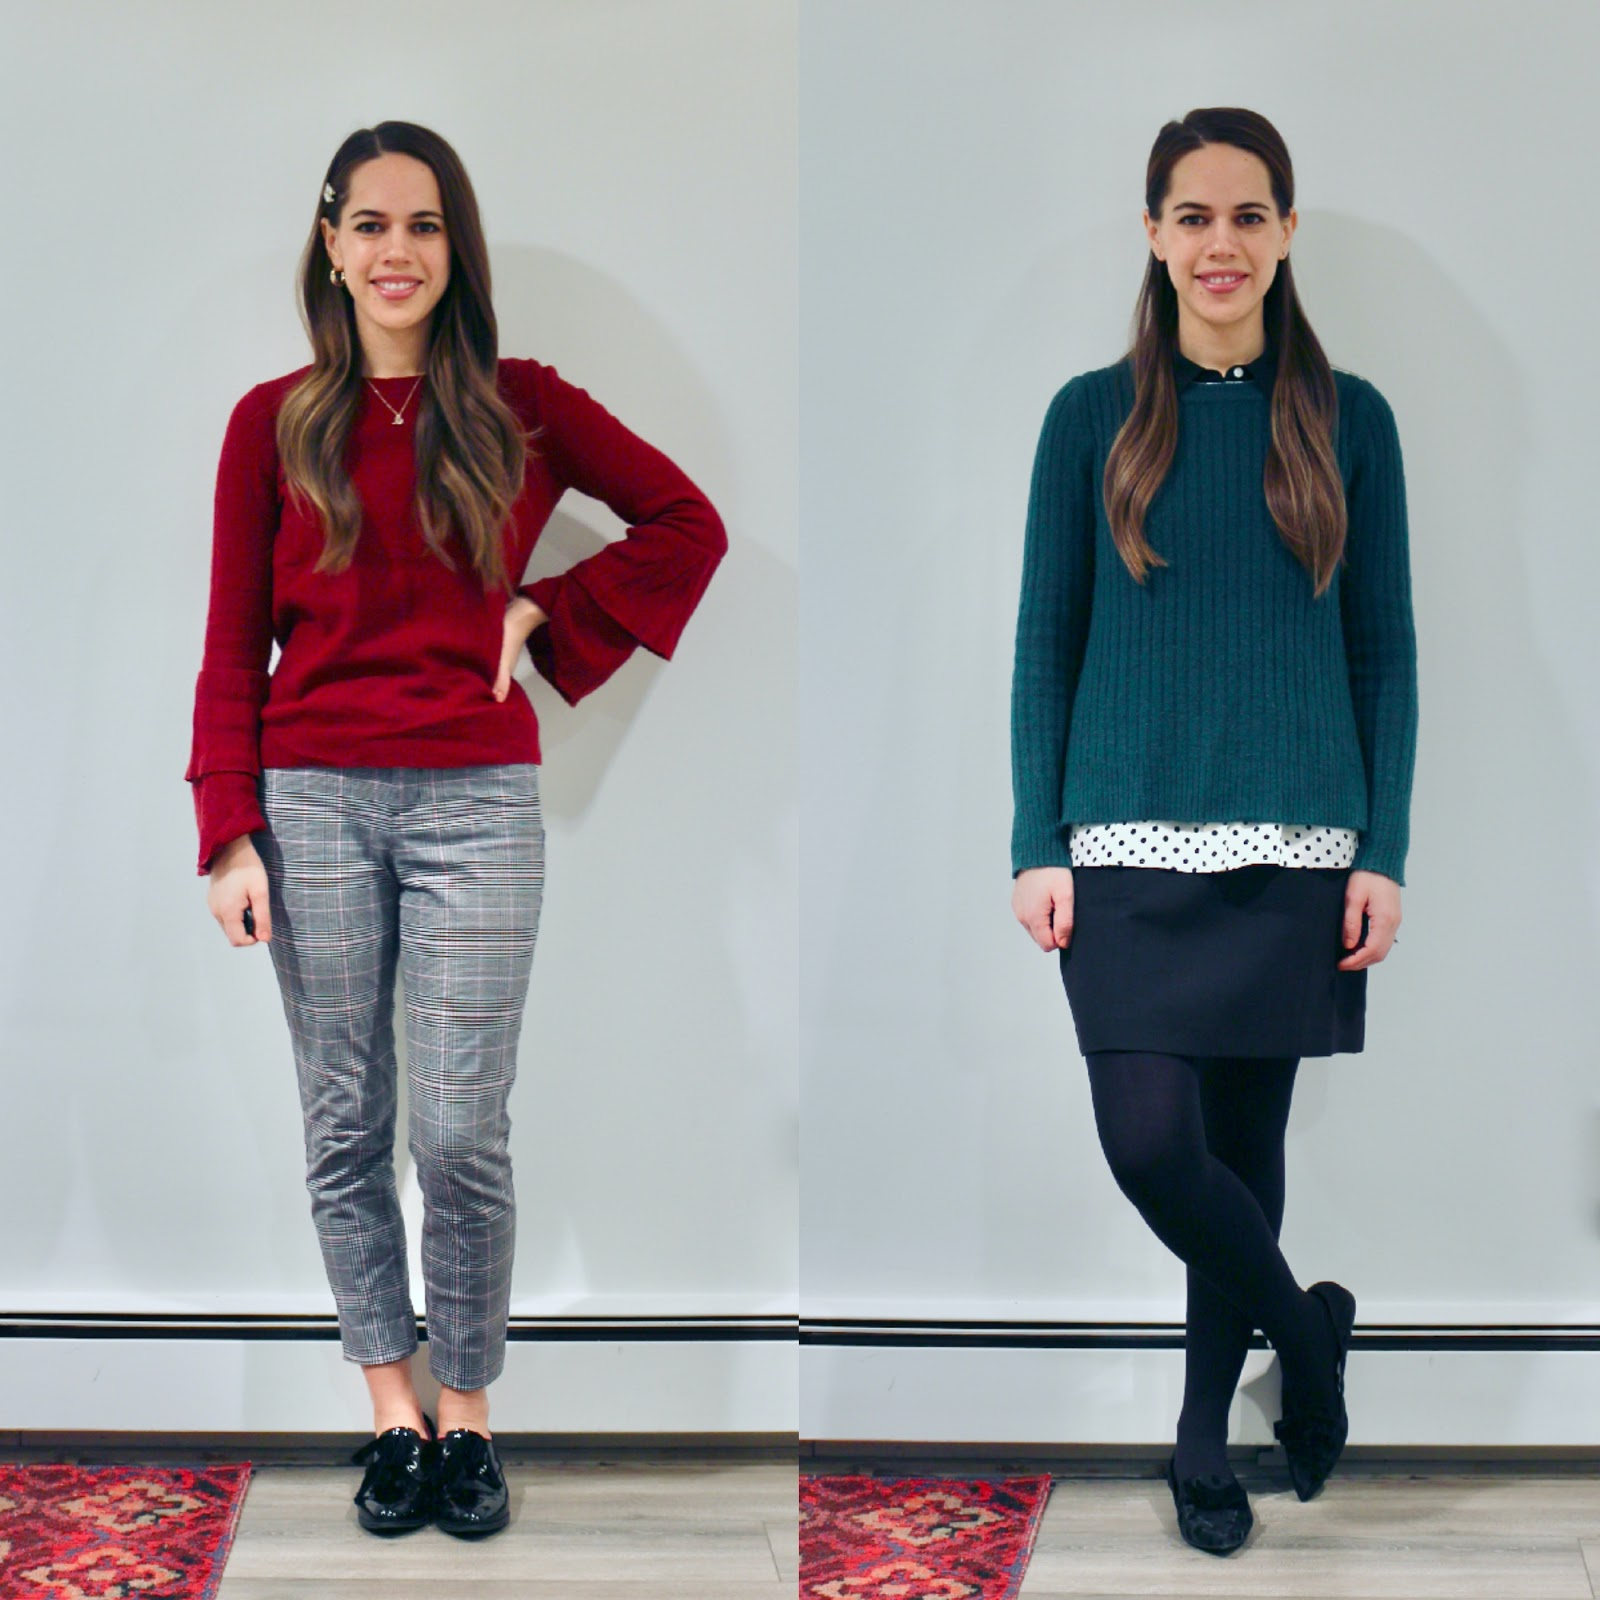 Jules in Flats - January Outfits Week Two (Business Casual Winter Workwear on a Budget)